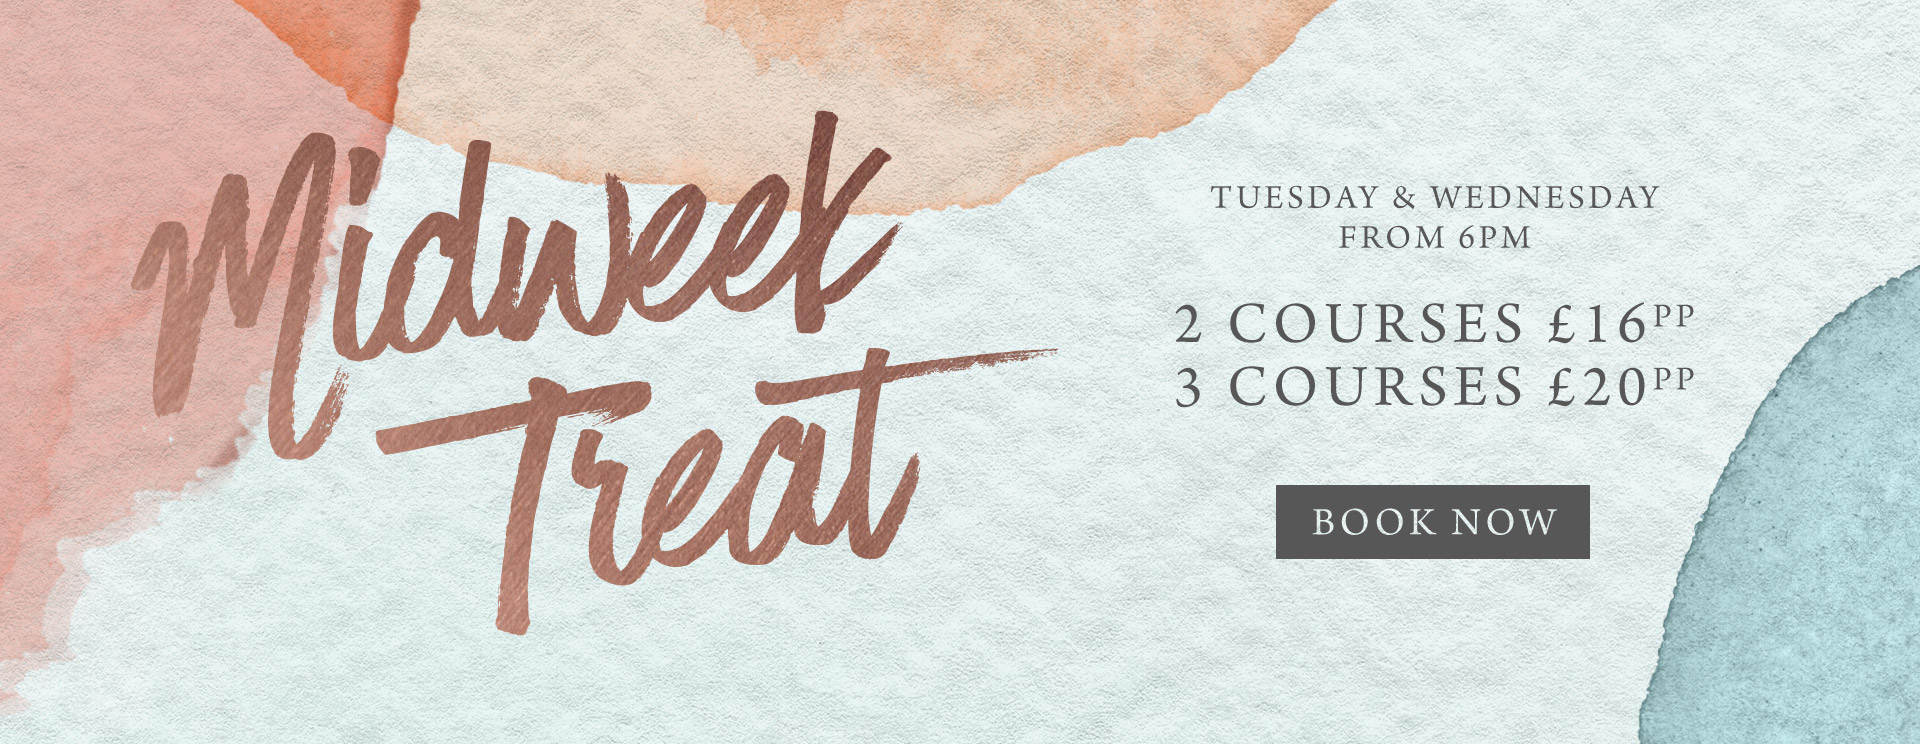 Midweek treat at The Derby Arms - Book now